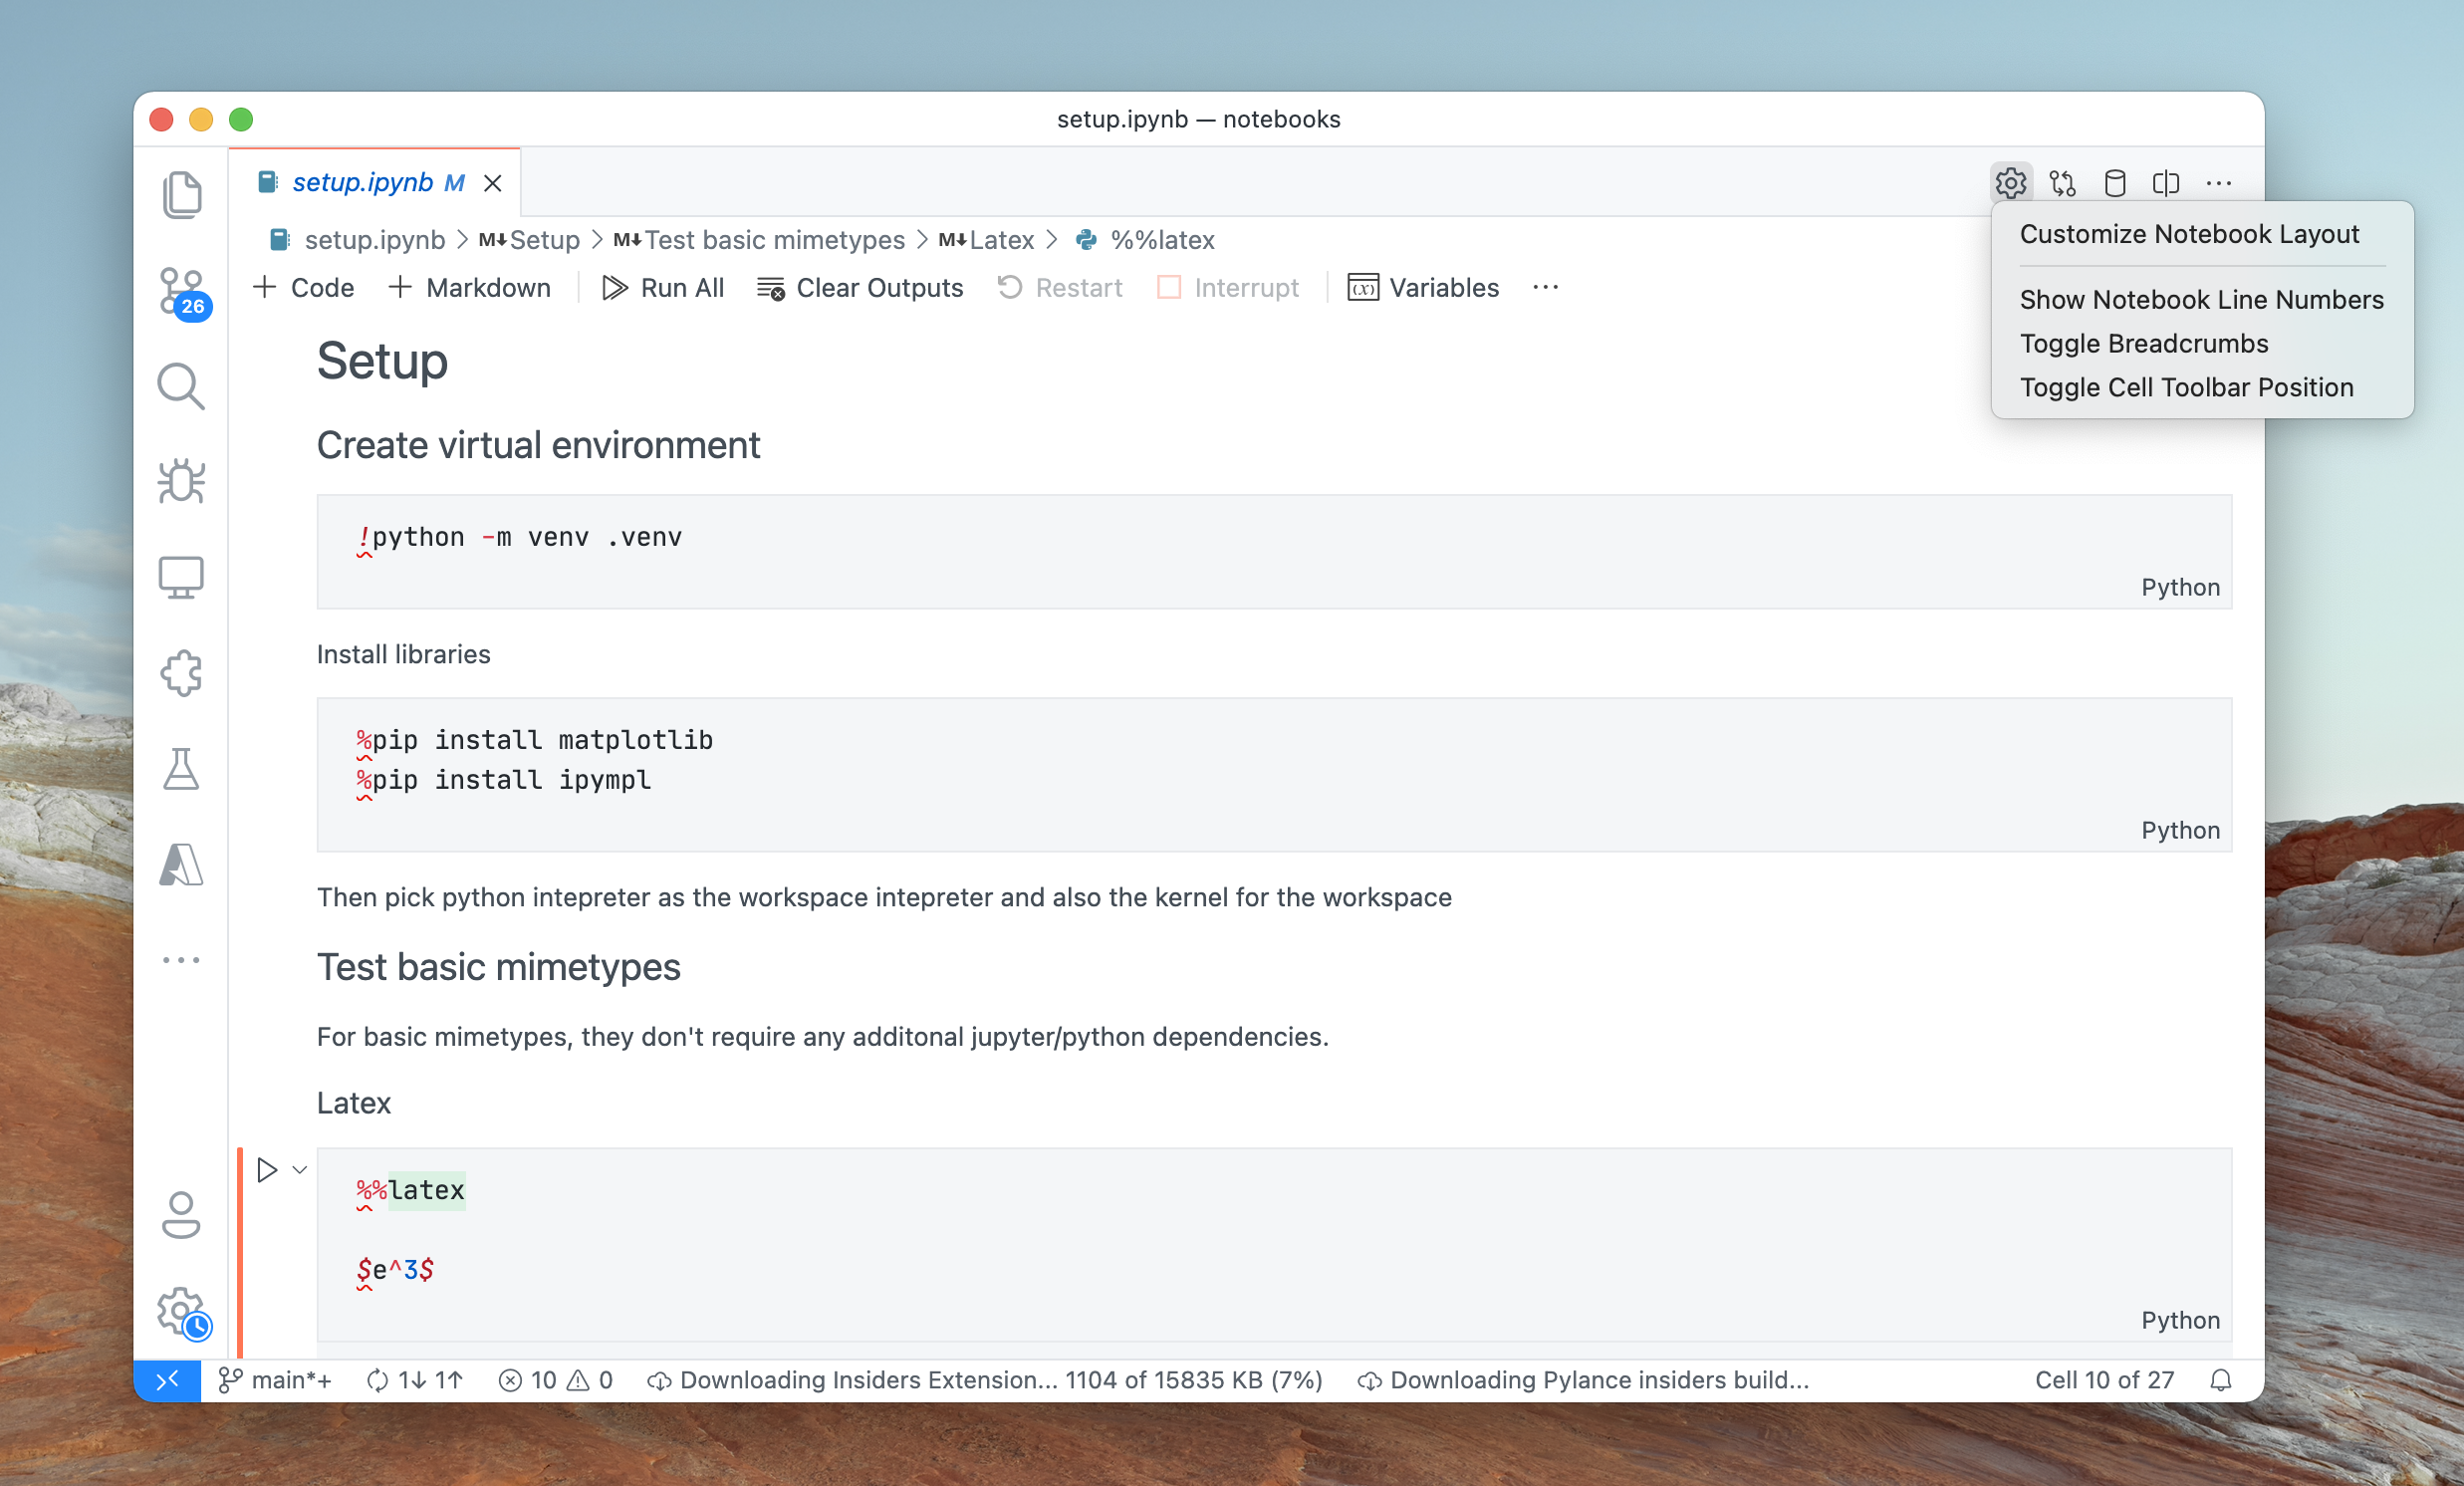 Notebook layout customization actions available in the editor toolbar